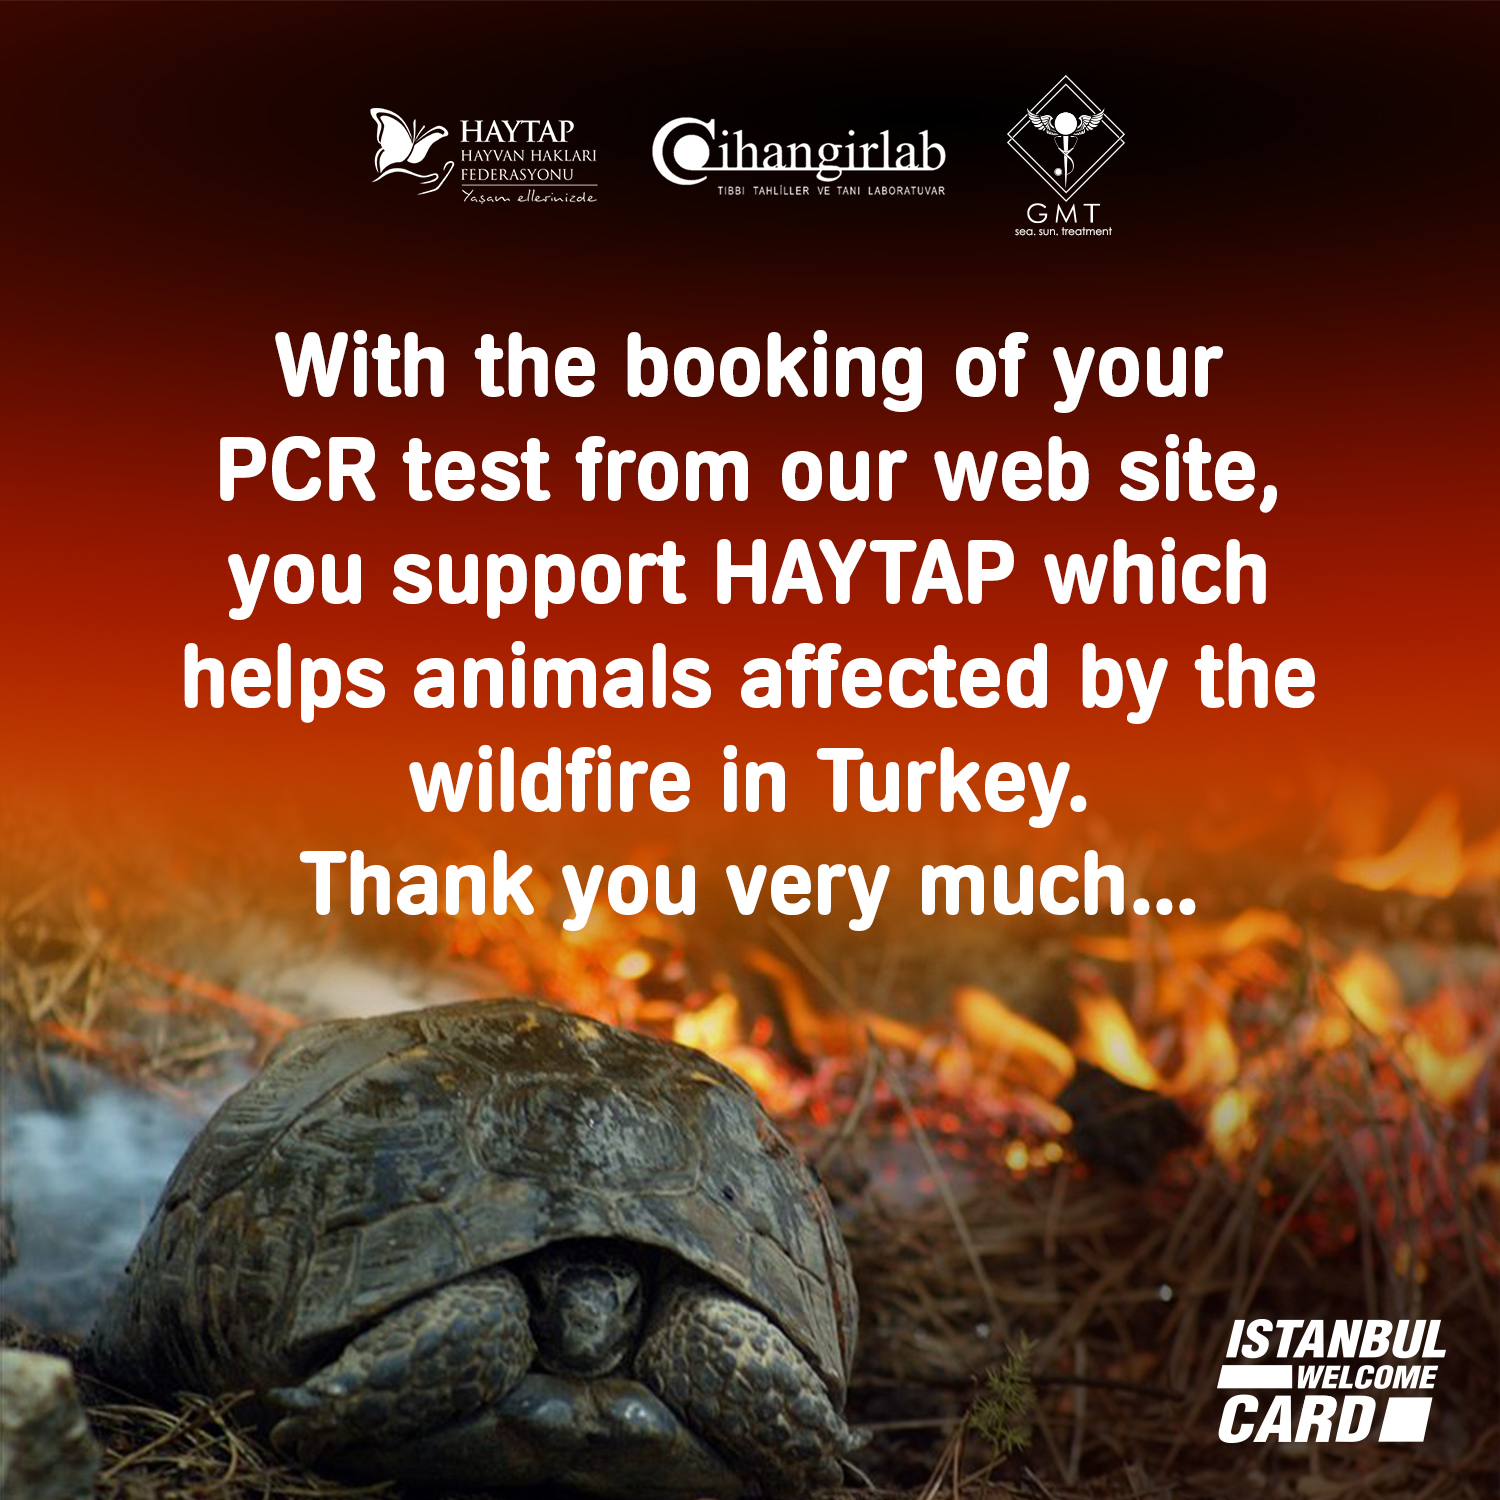 With the booking of your PCR test from our web site, you support HAYTAP which helps animals affected by the wildfire in Turkey. Thank you very much...